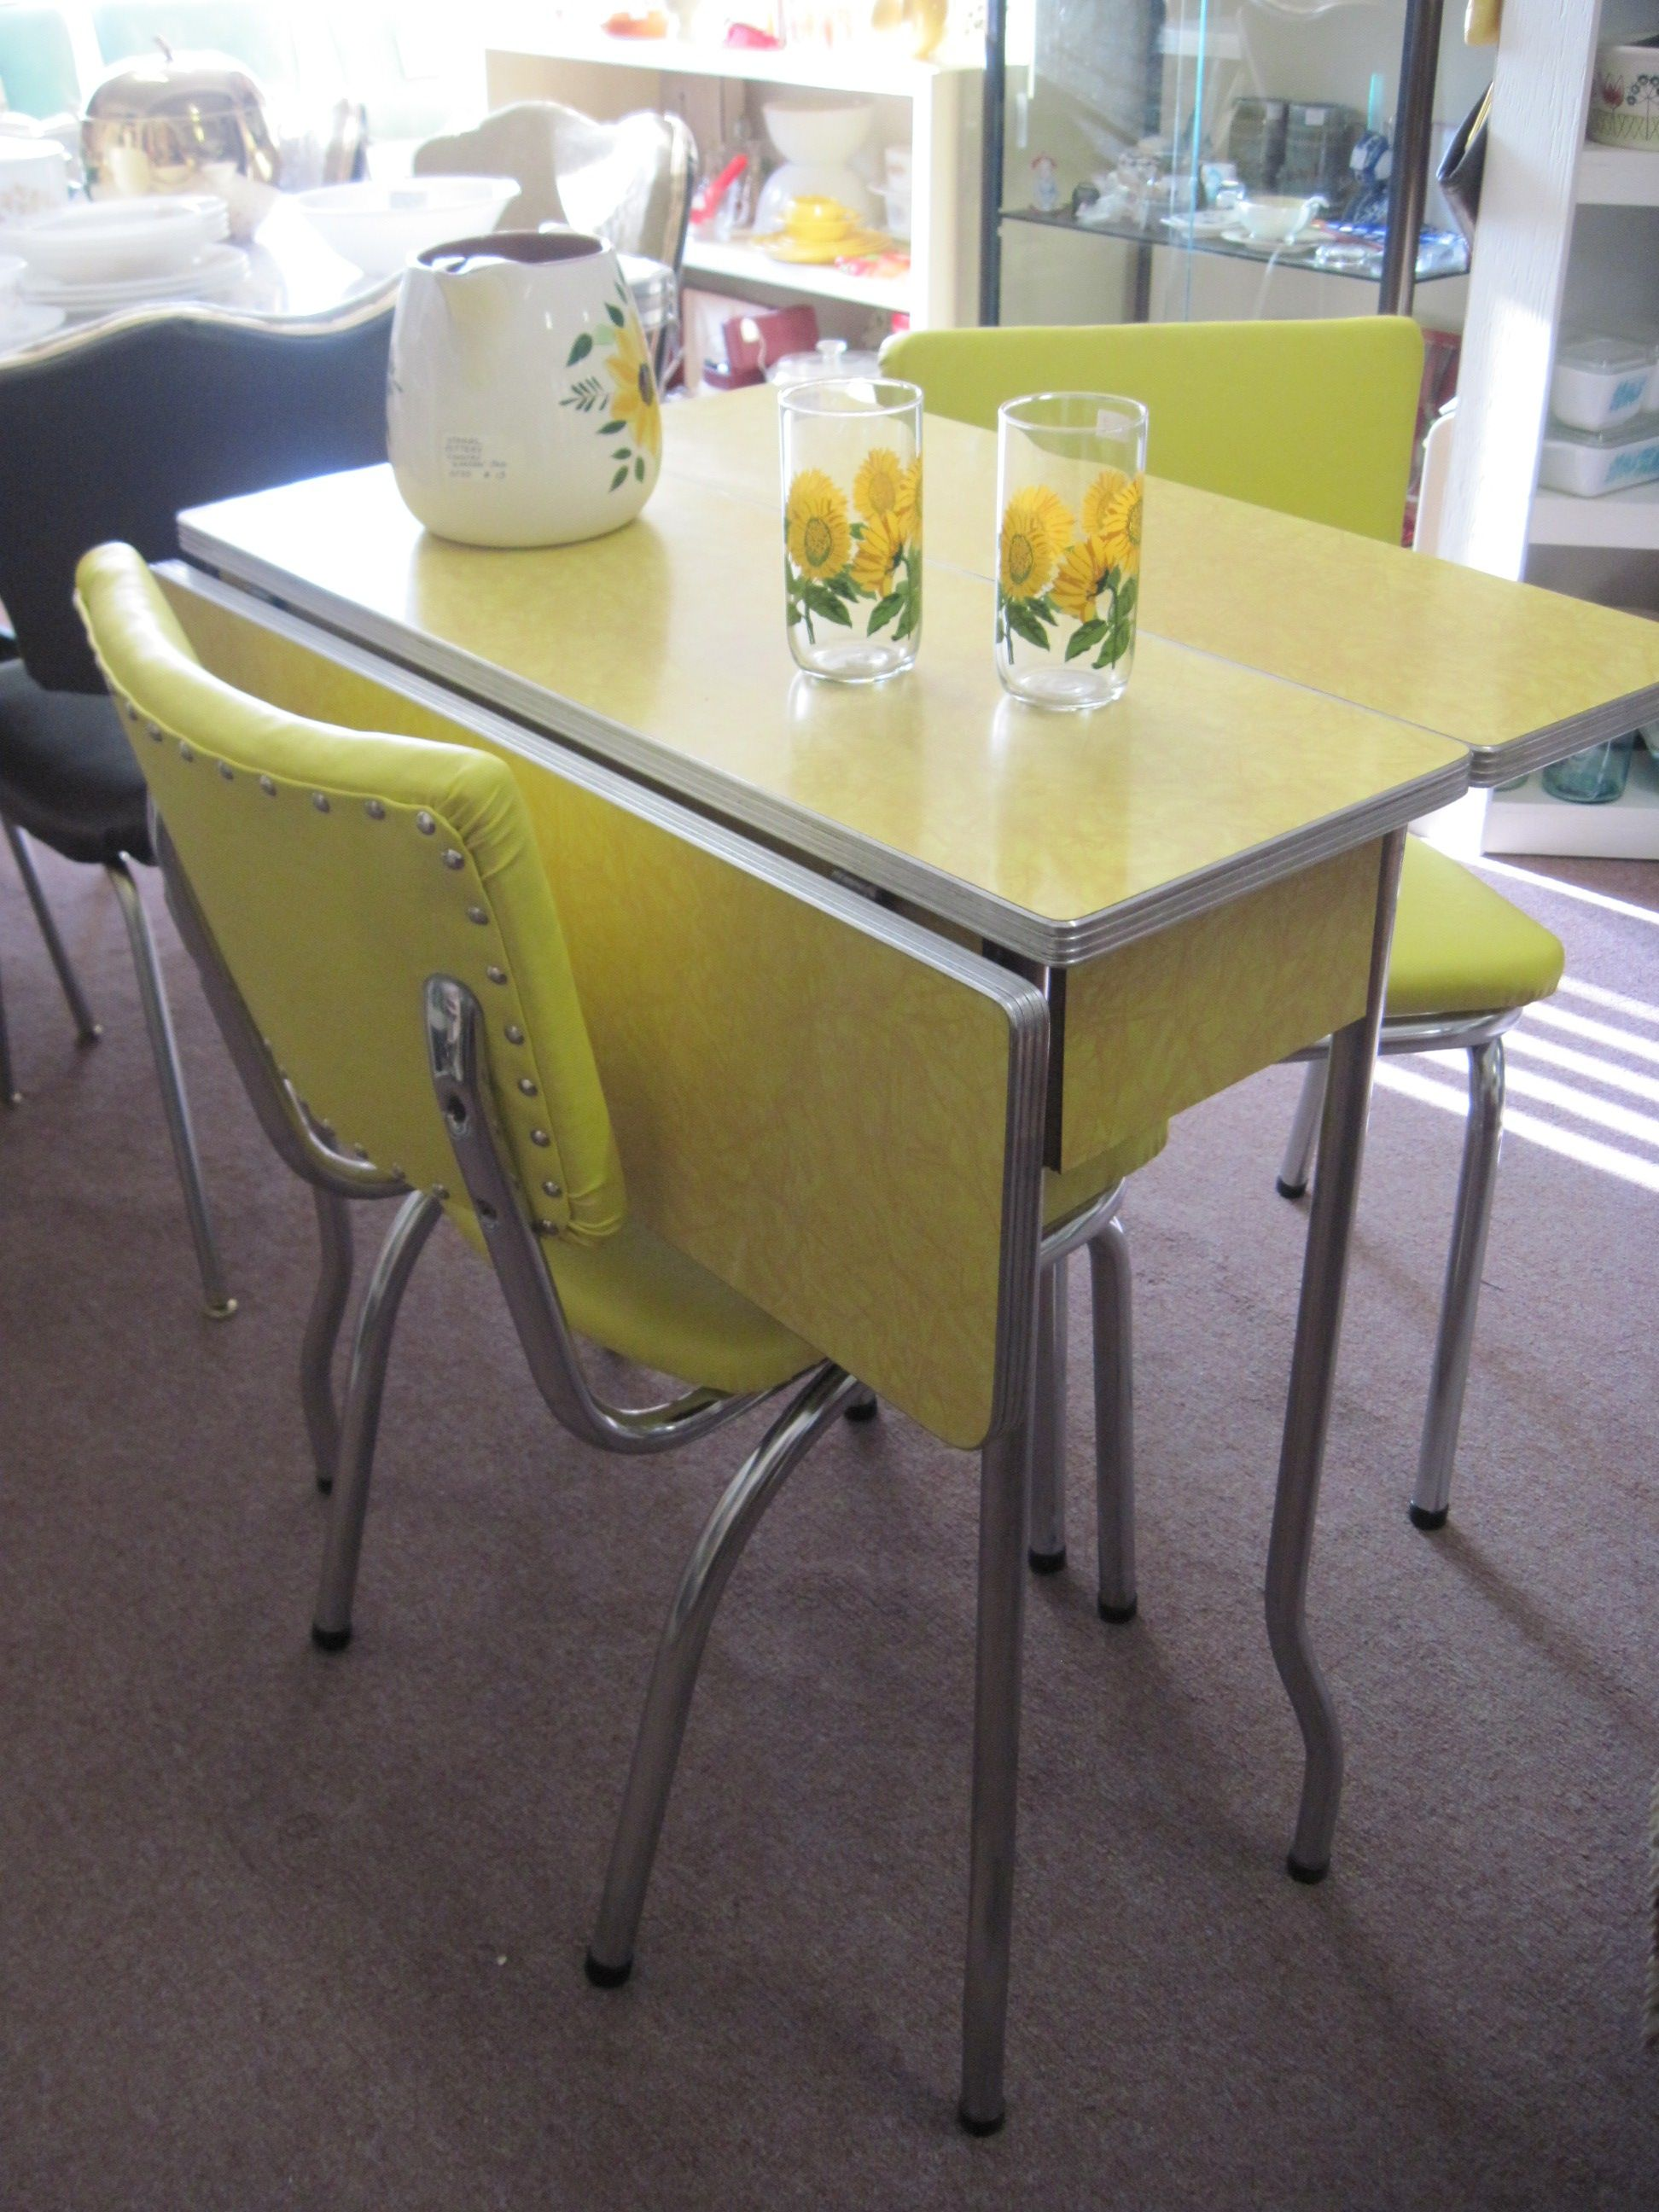 Cuisine Vintage Formica 1950 Formica Table And Chairs Yellow 1950 S Cracked Ice Formica